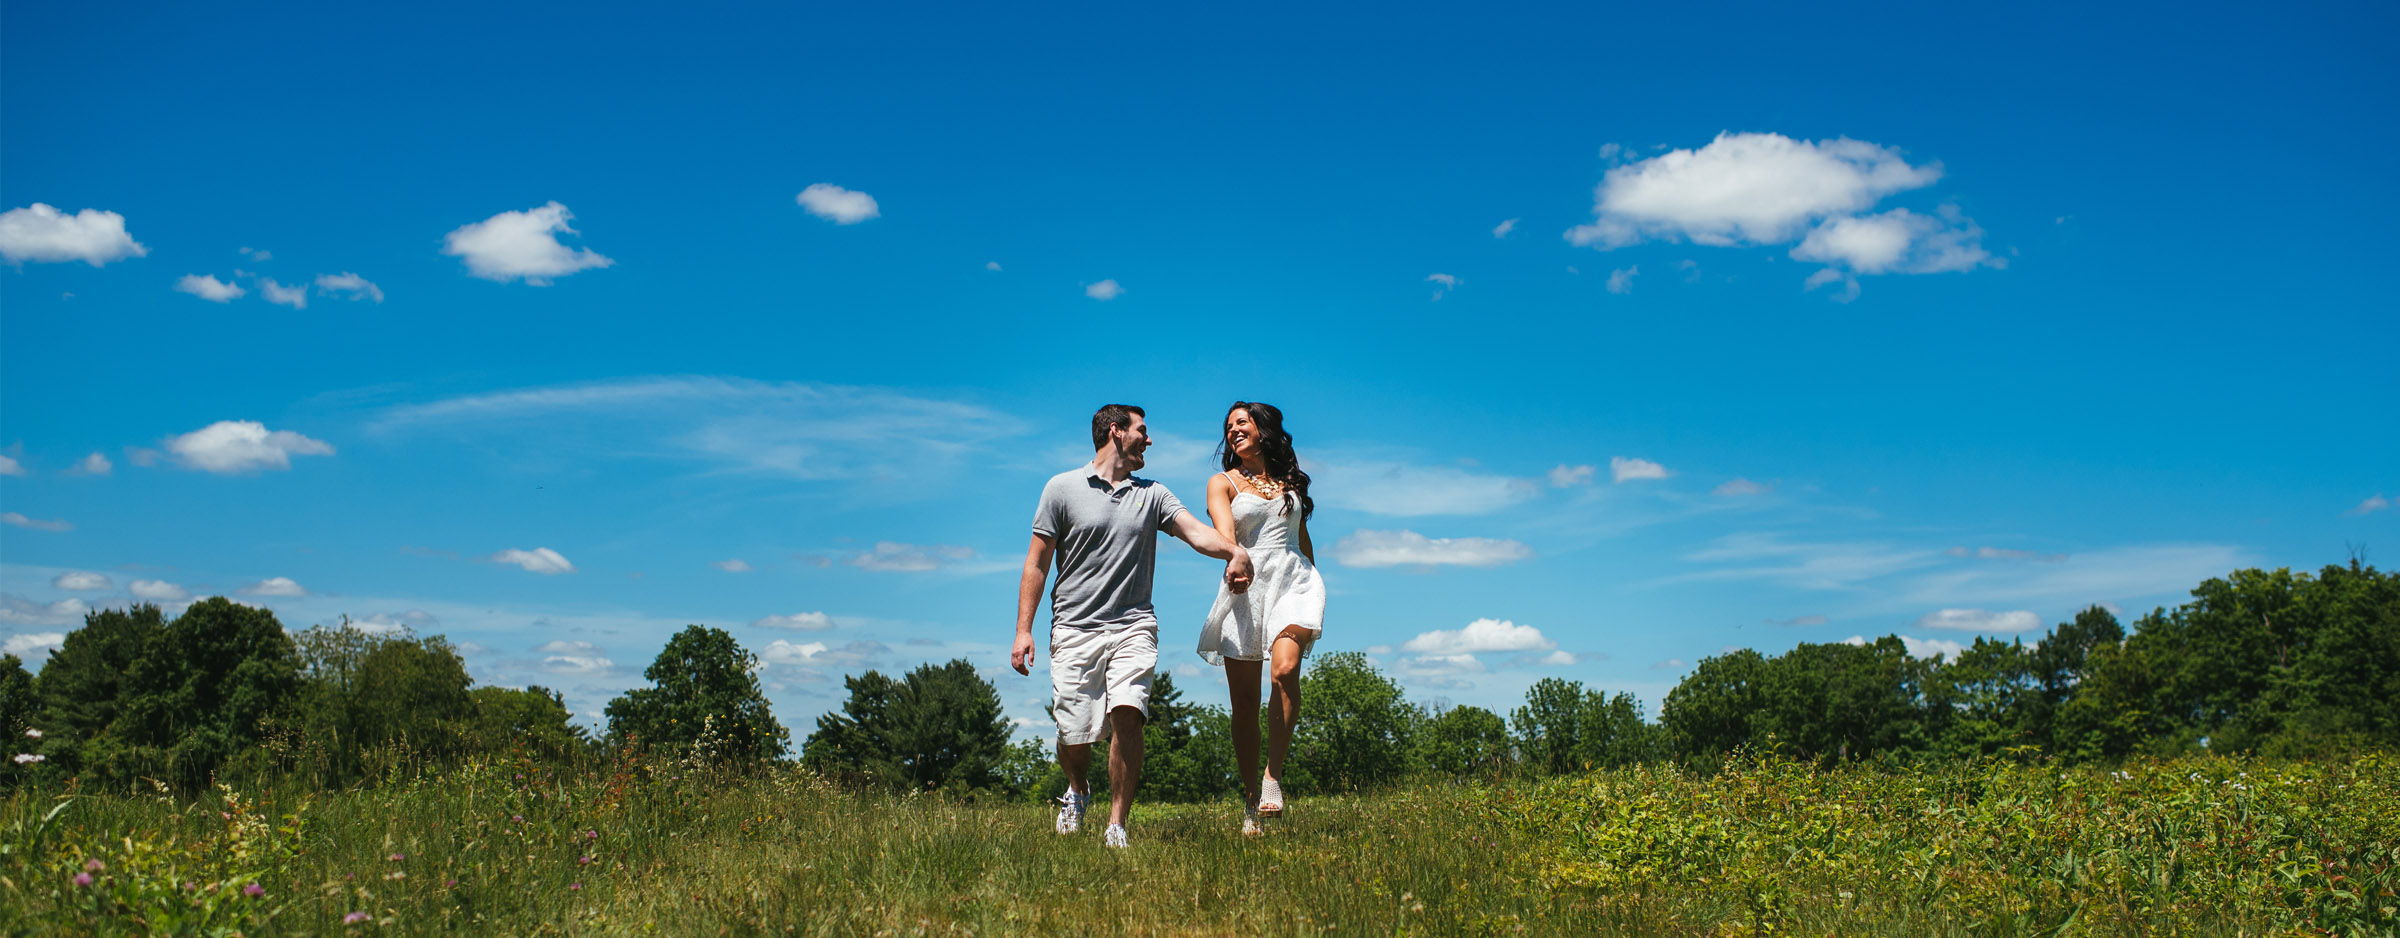 Hillstead-Museum-Farmington-Engagement-Alyssa-Mike-0001